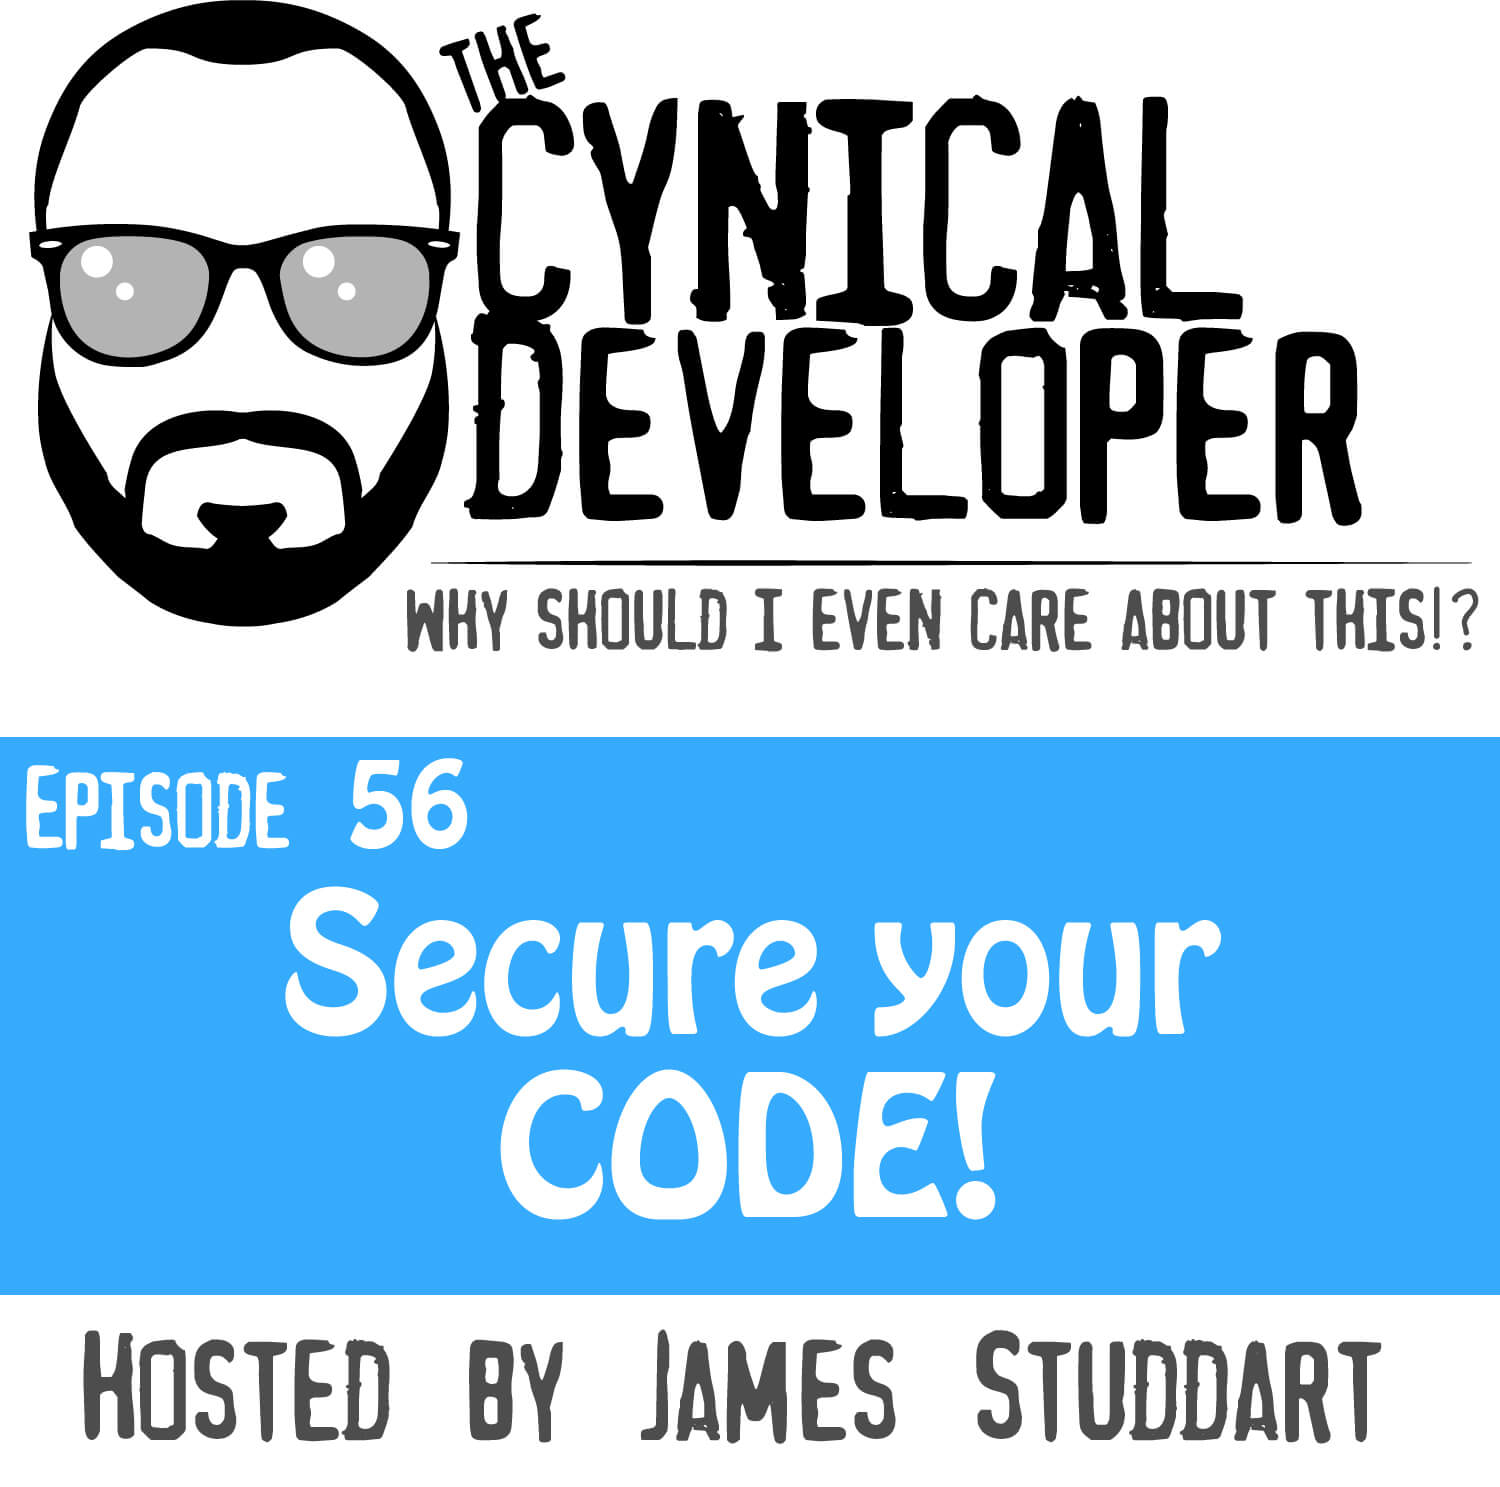 Episode 56 - Secure your CODE!